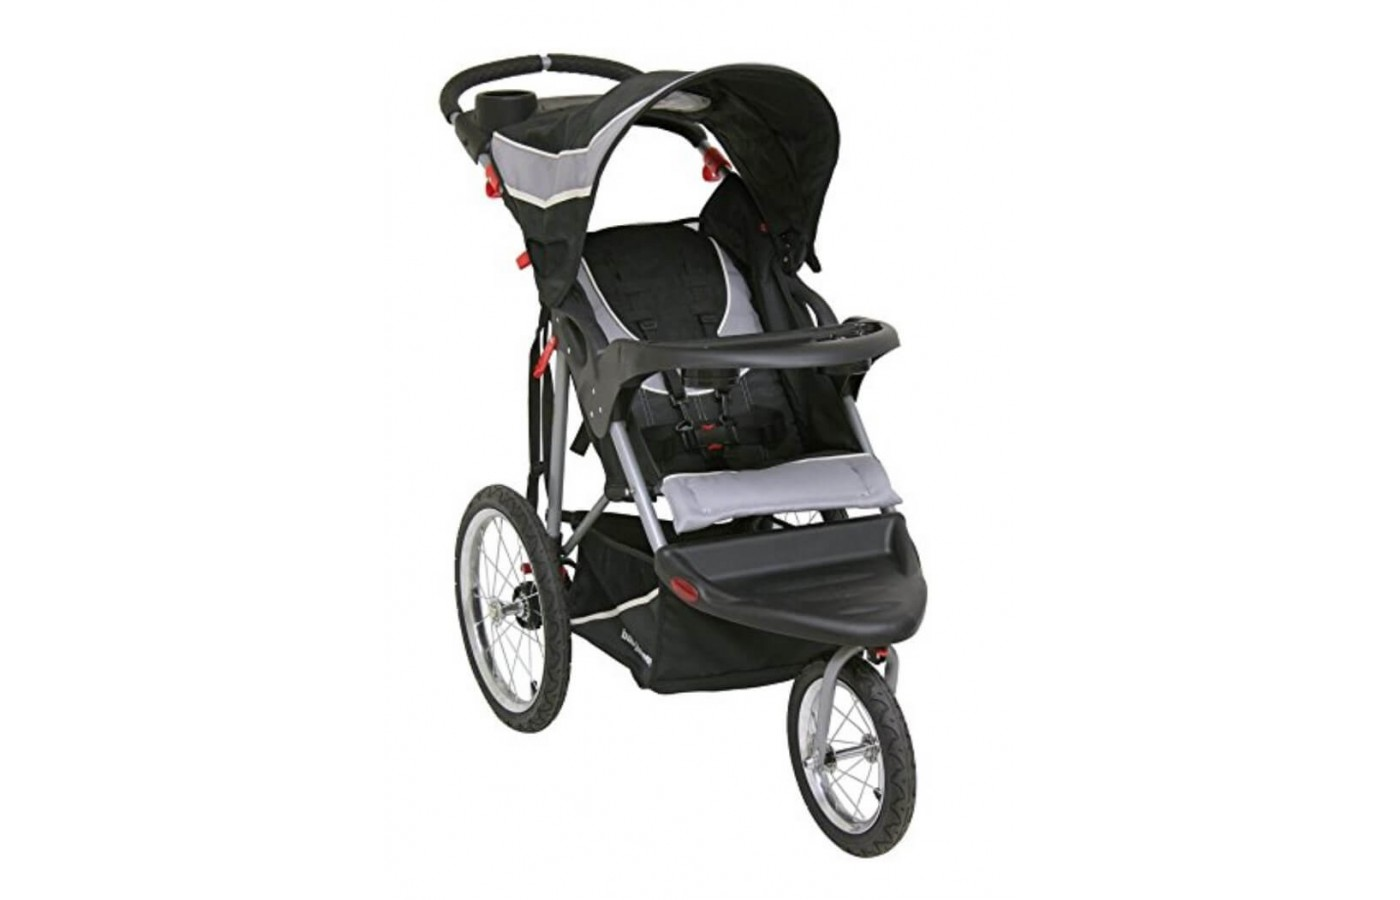 Baby Trend Expedition Jogger Stroller front